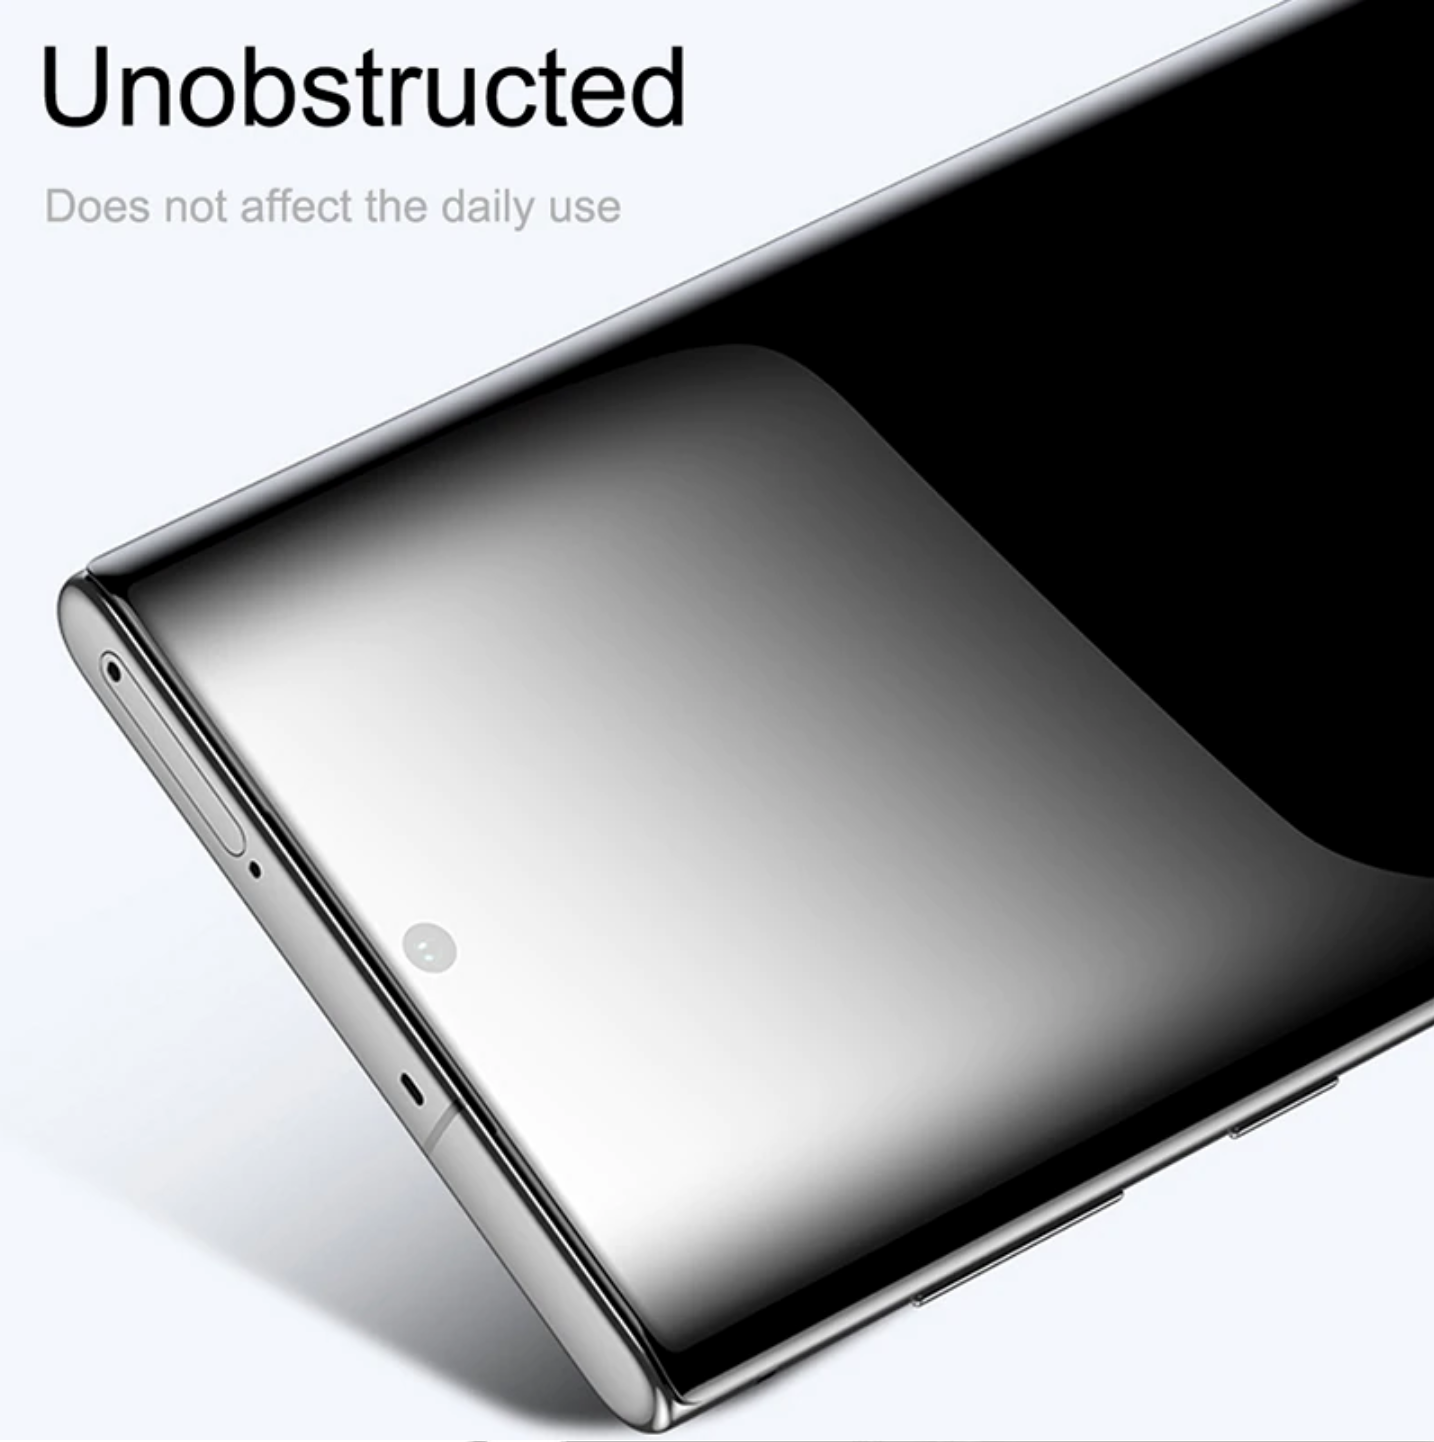 Samsung Galaxy Note 10 Plus 100% Original Tempered Glass- 4D Curved for Edge to Edge protection